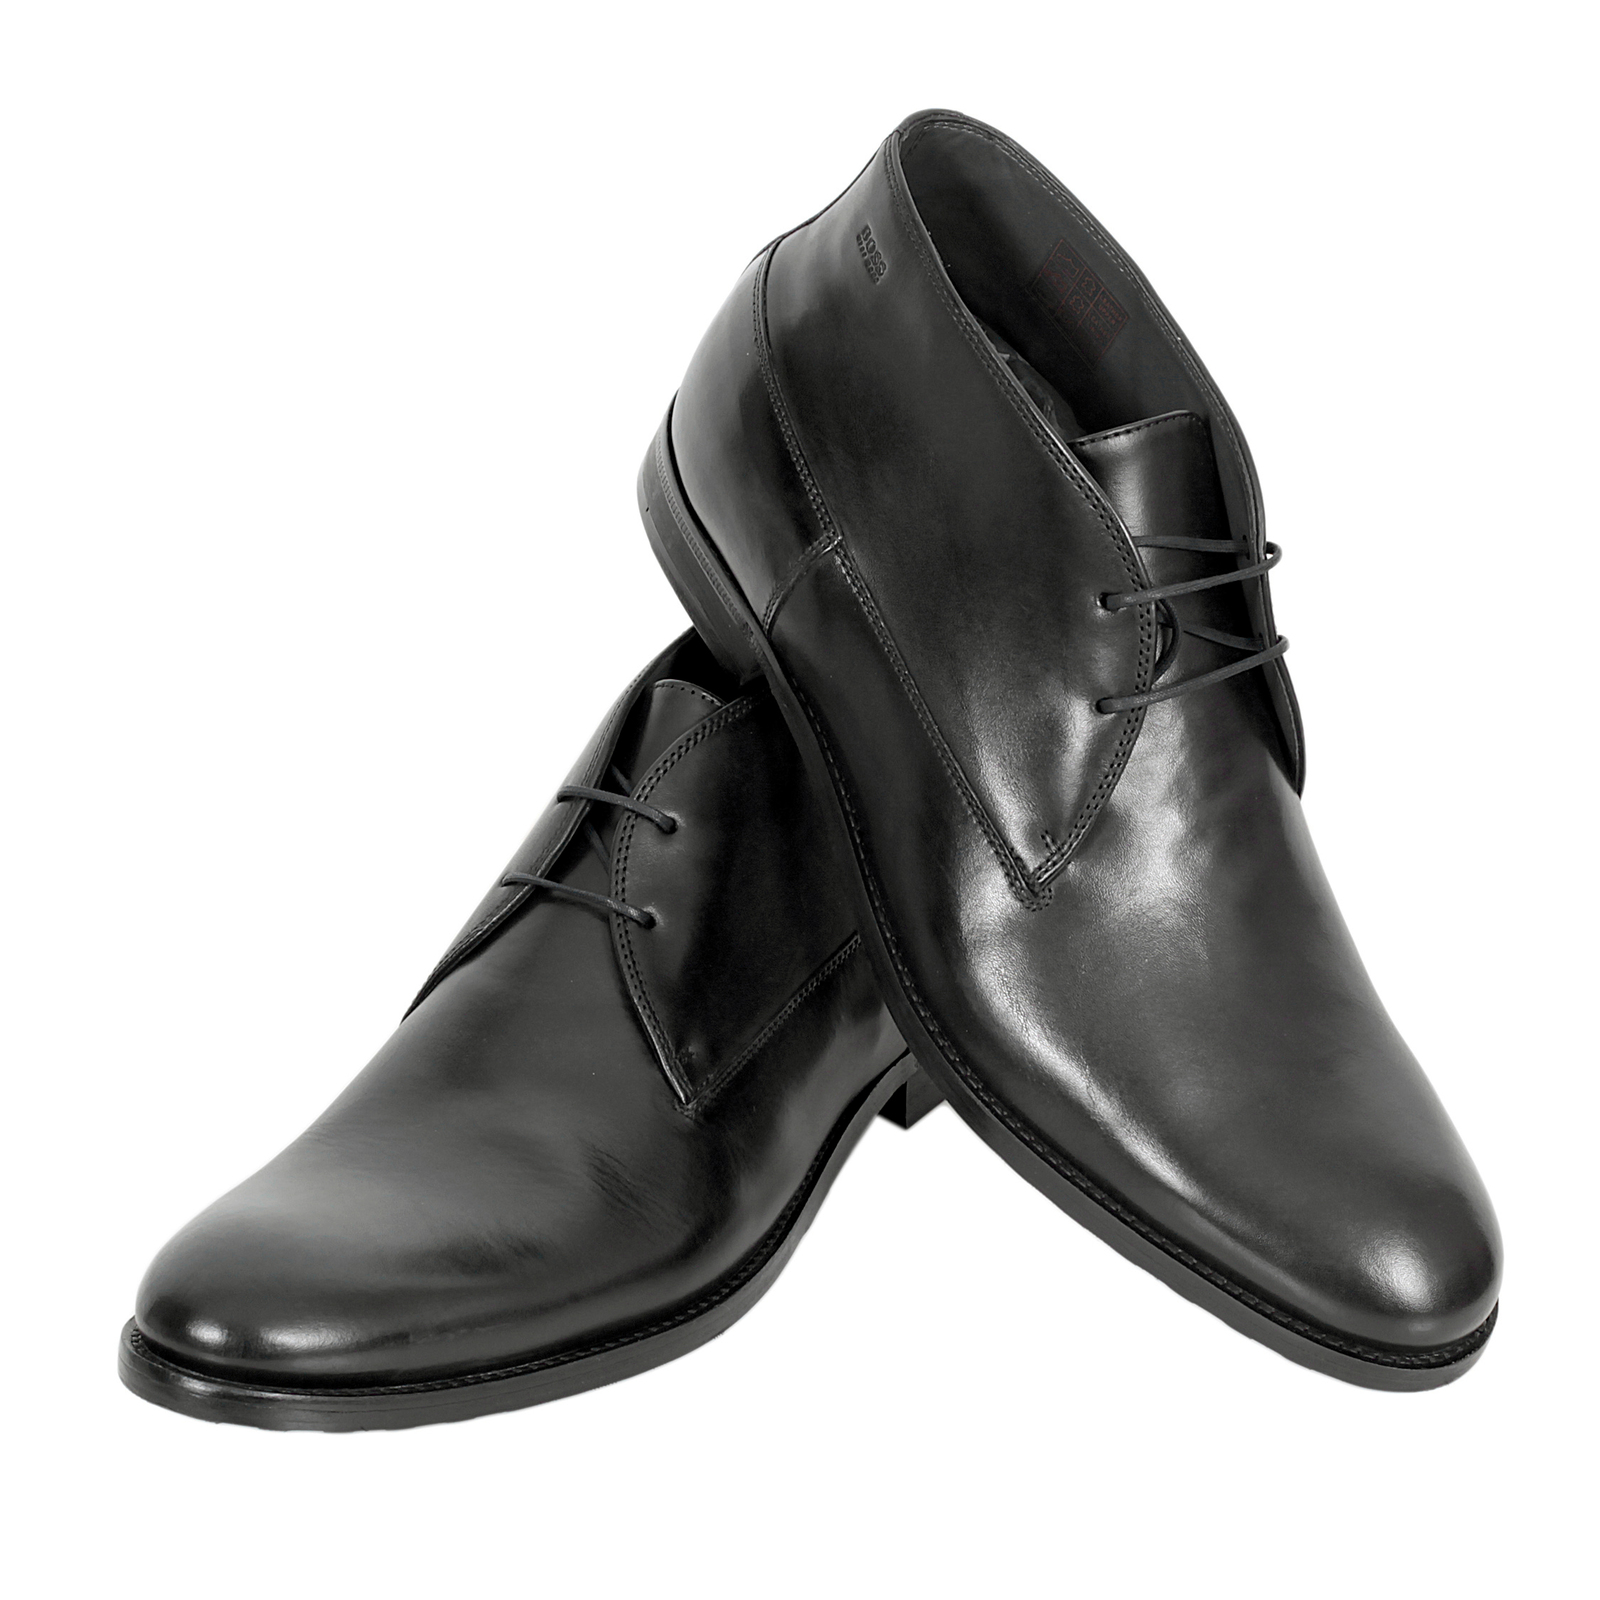 hugo boss shoes dresert black leather ankle boots 50271584